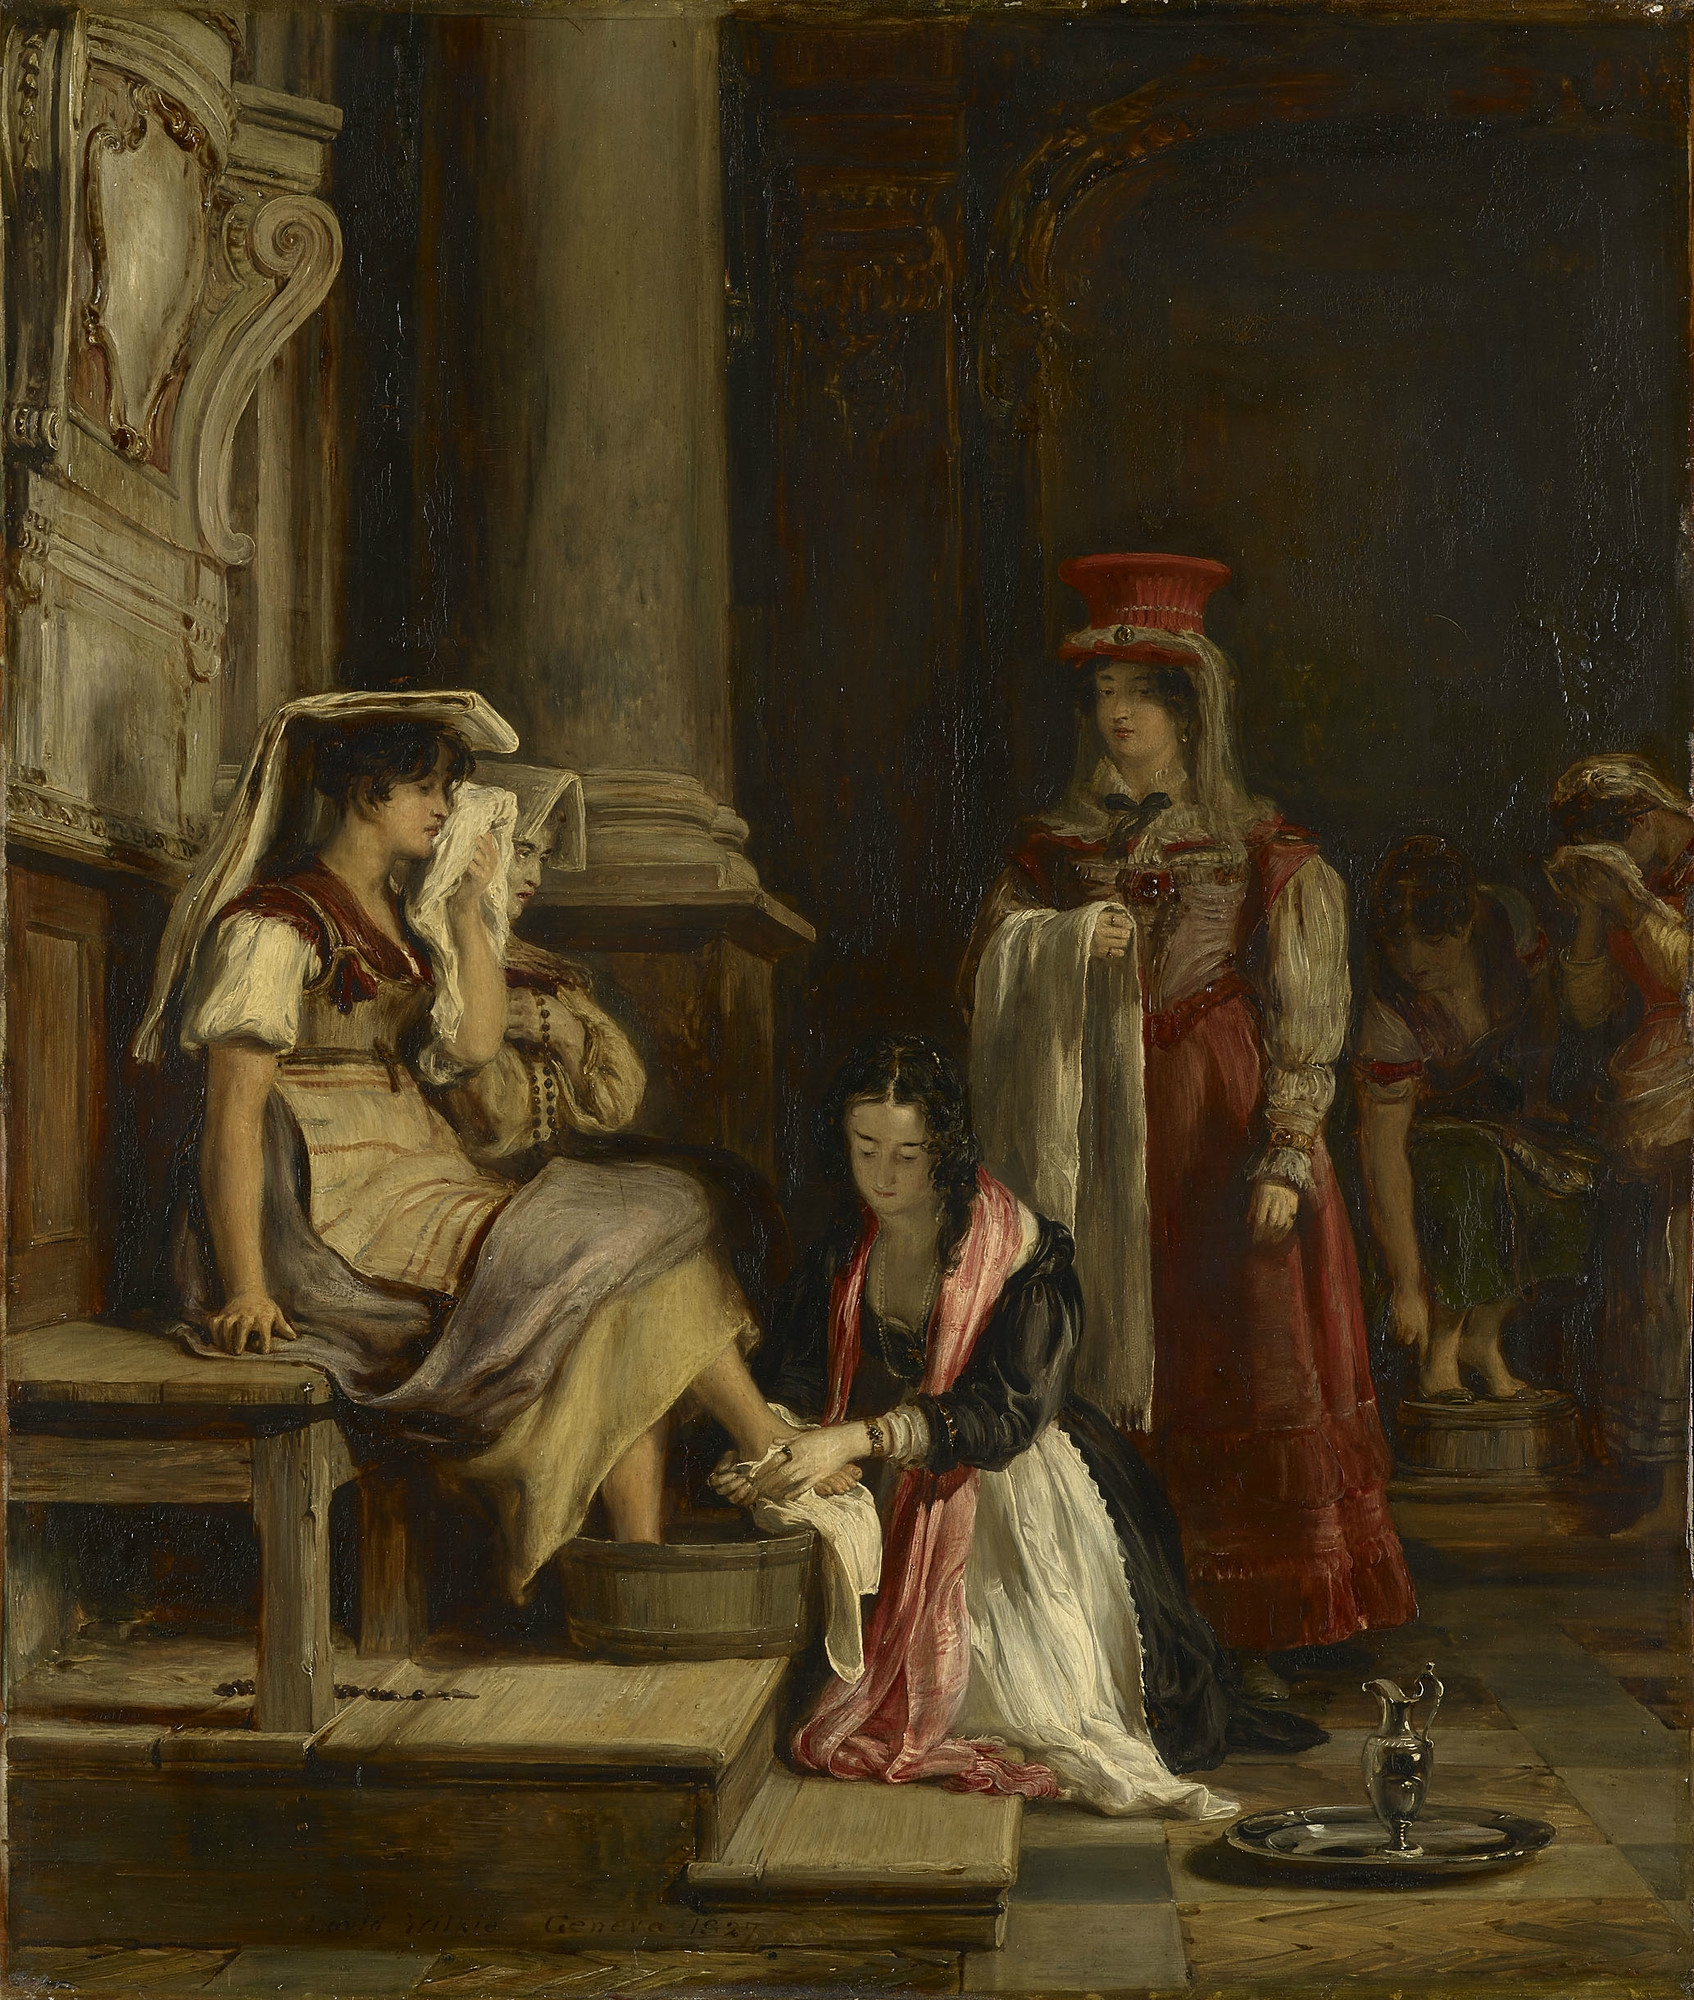 Wilkie 1827 A Roman Princess Washing the Feet of Pilgrims